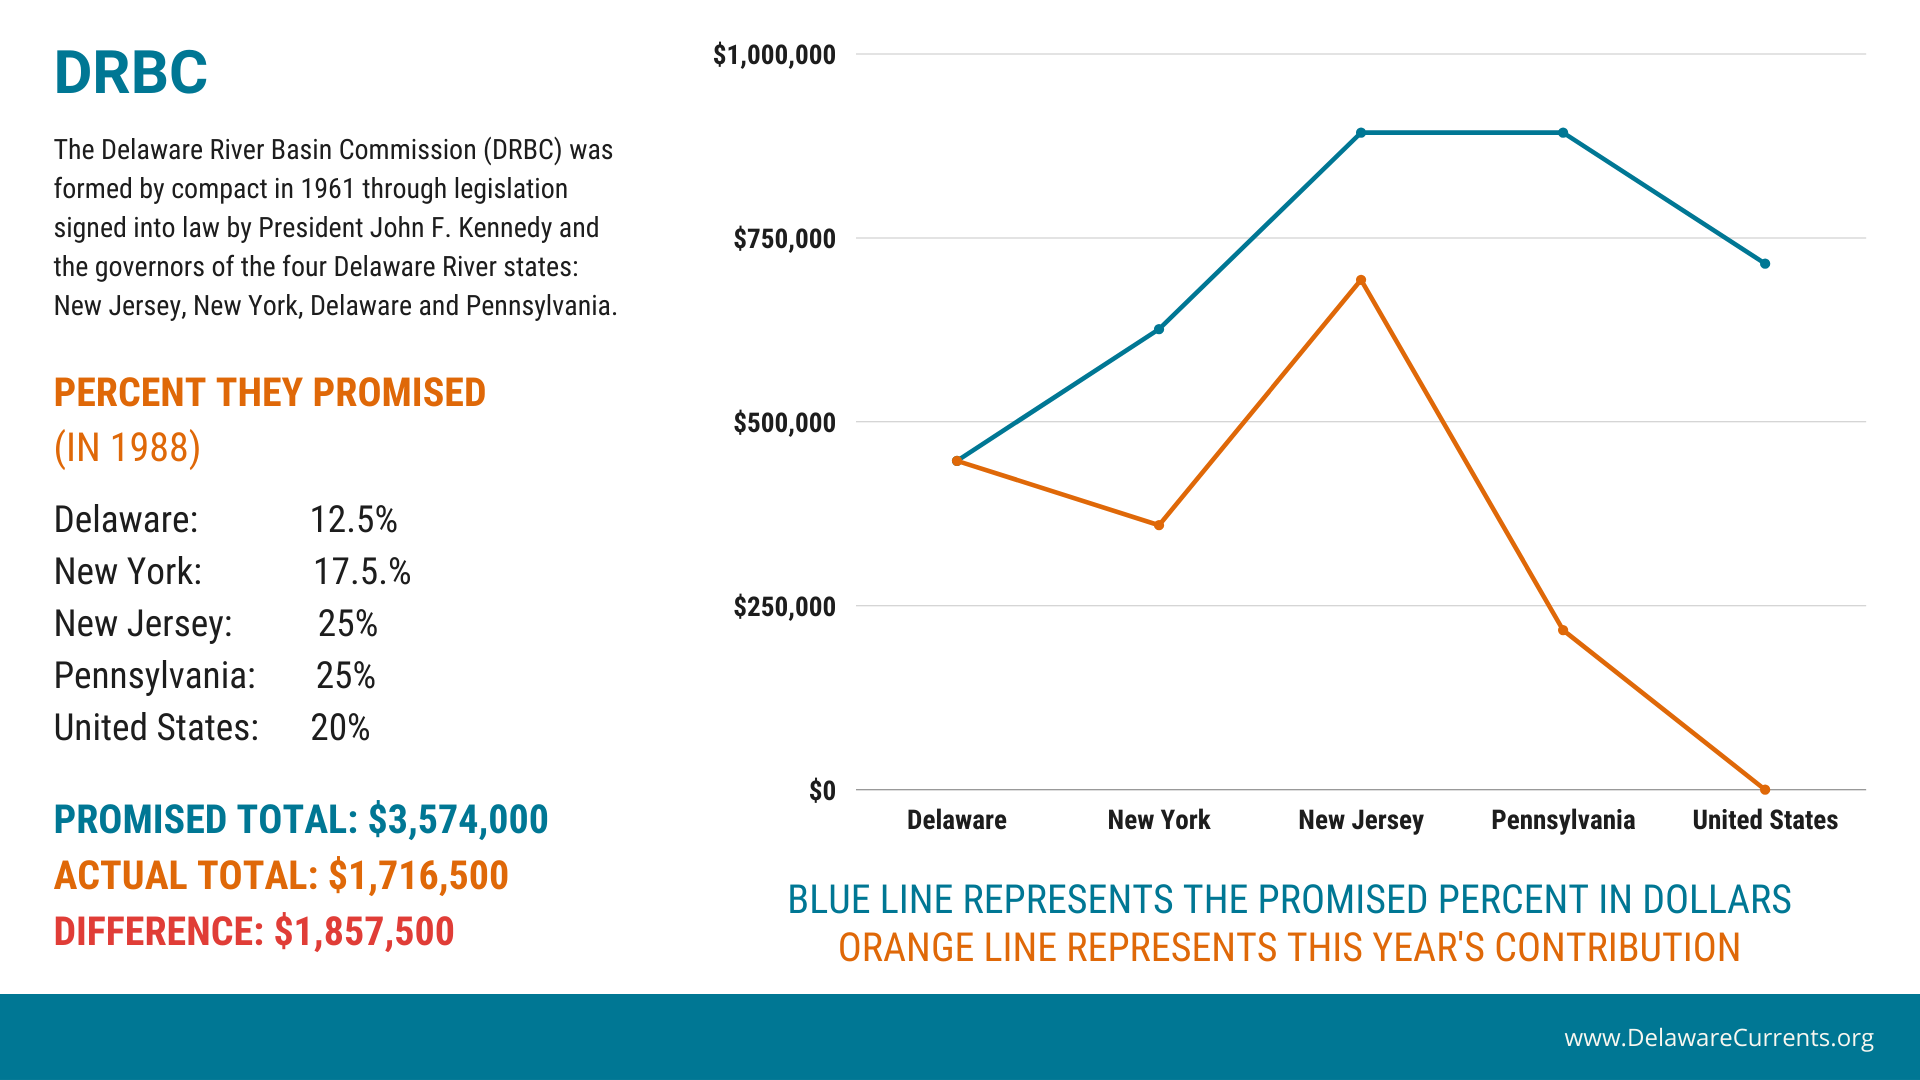 graphic showing the relationship between promised funding and actual funding for the Delaware River Basin Commission